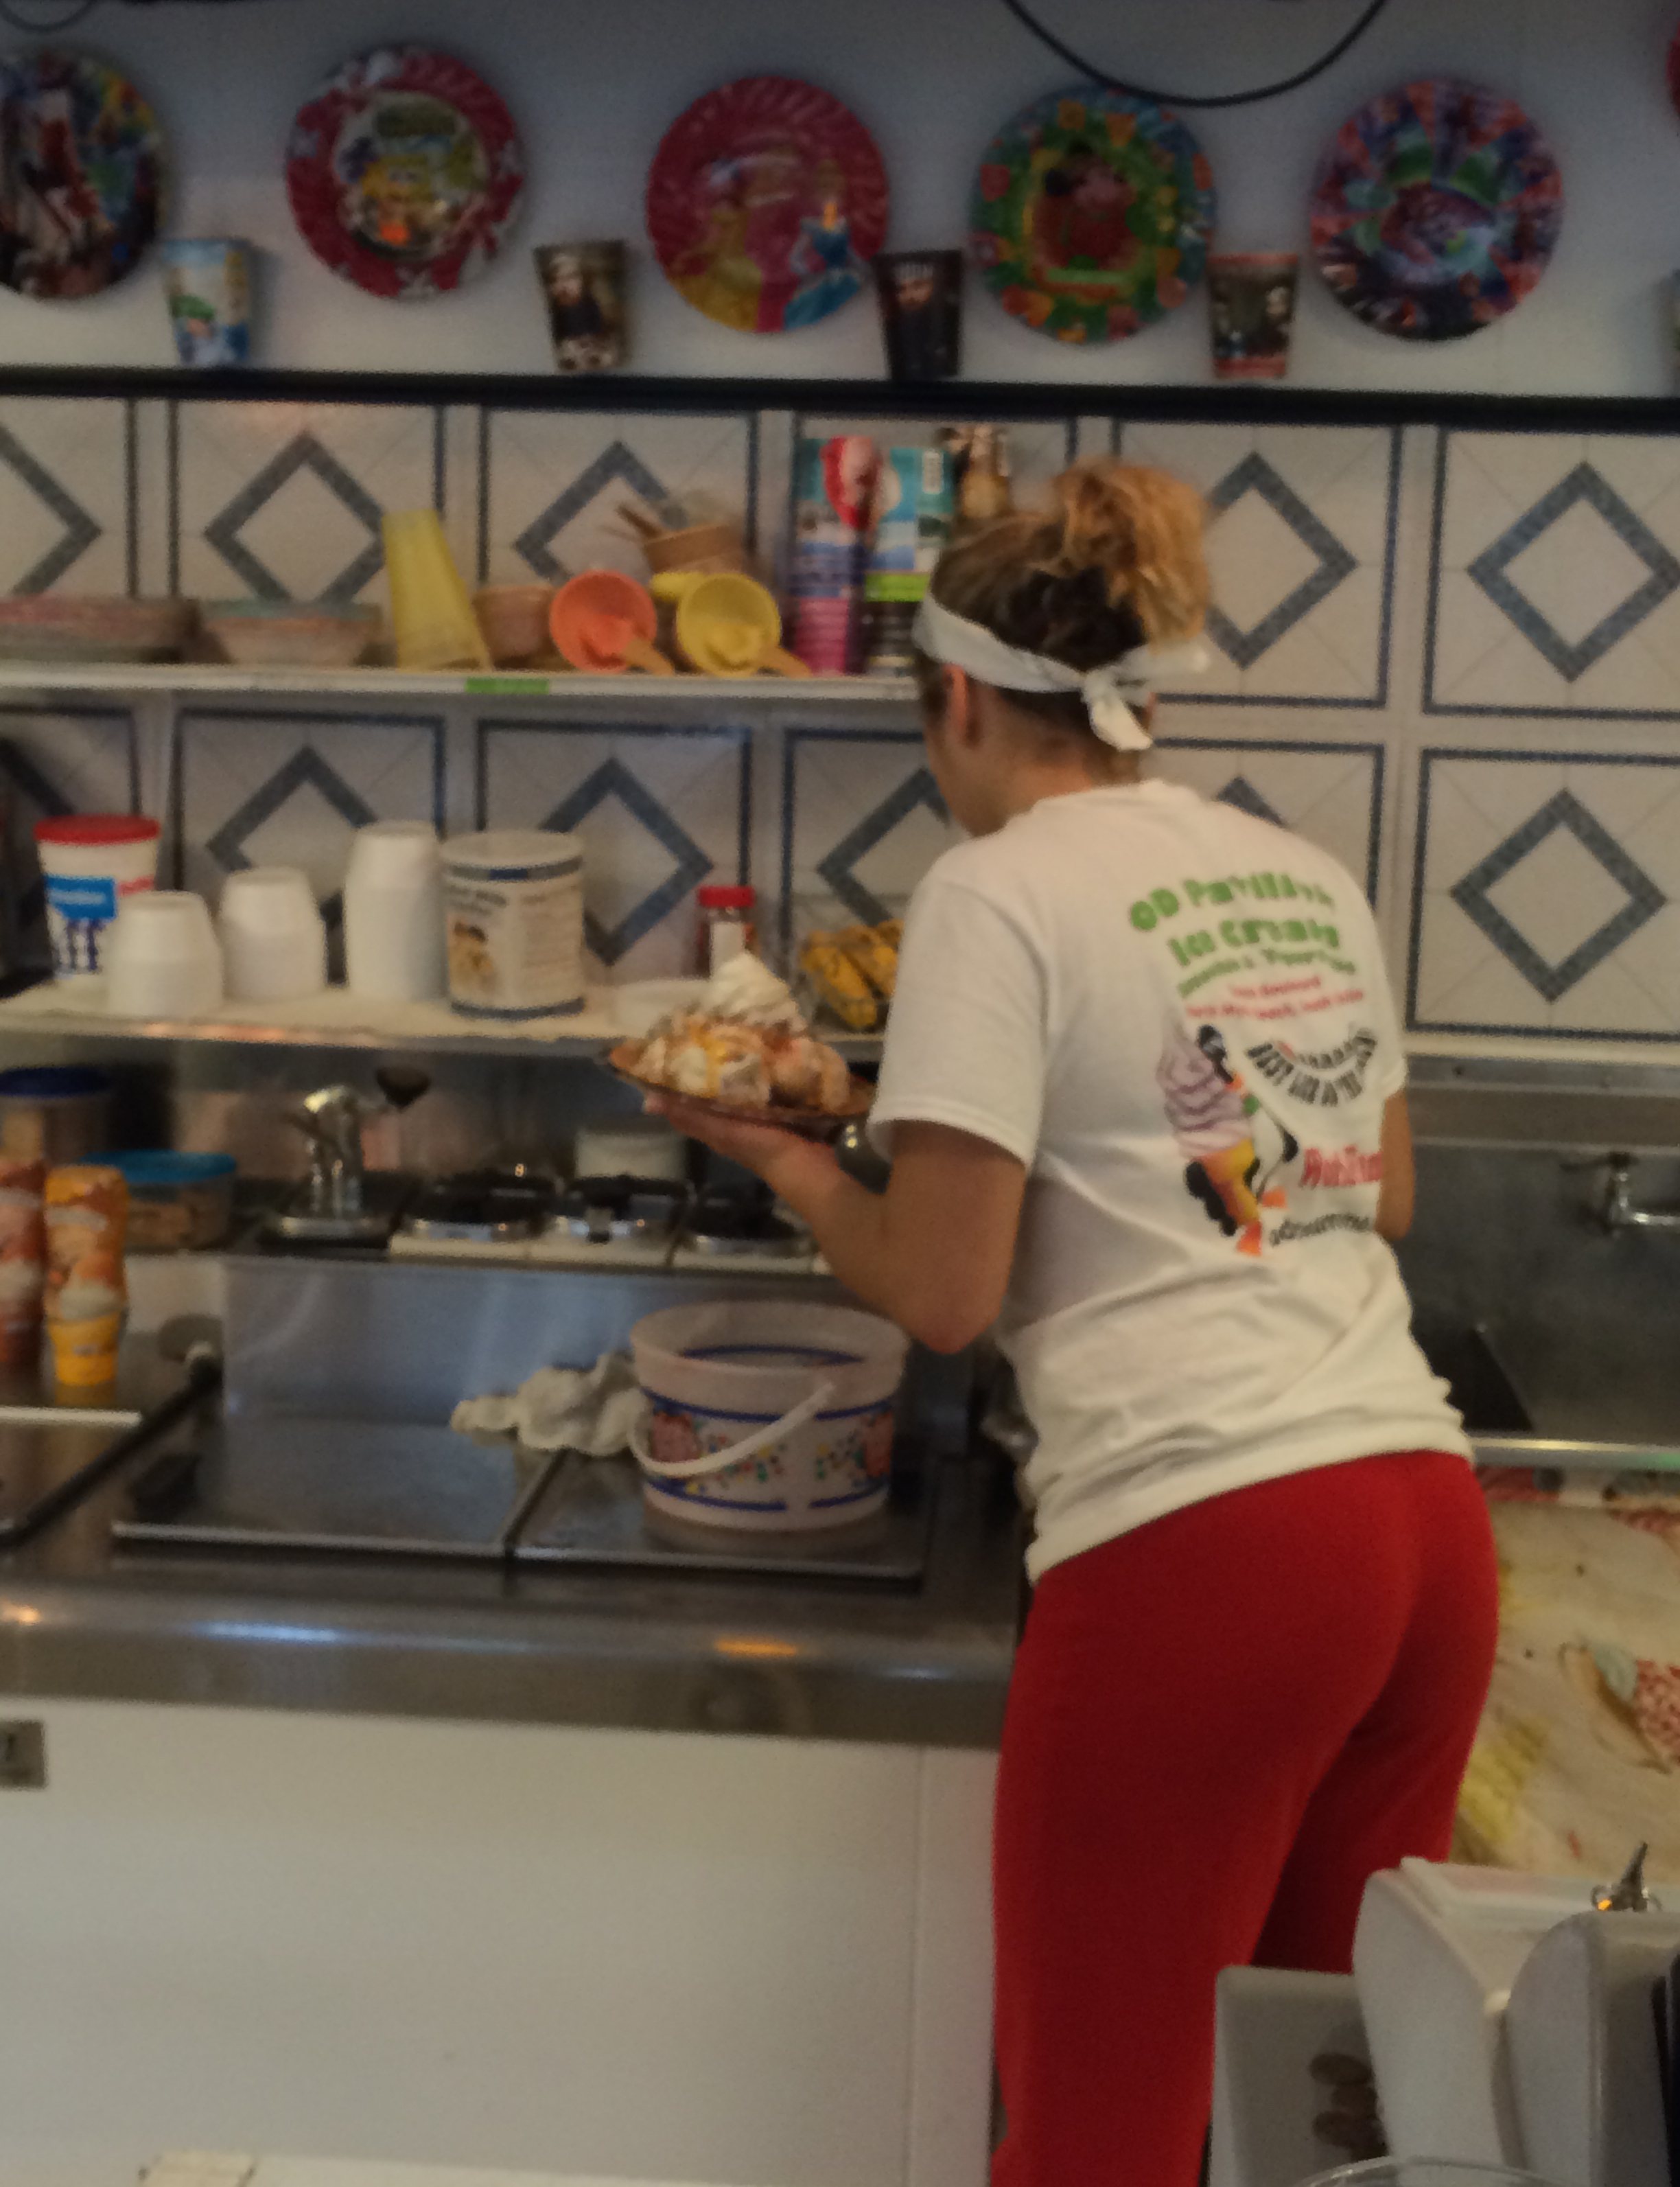 The very  nice O.D. Pavilion Ice Cream employee making the Waterdog Challenge.